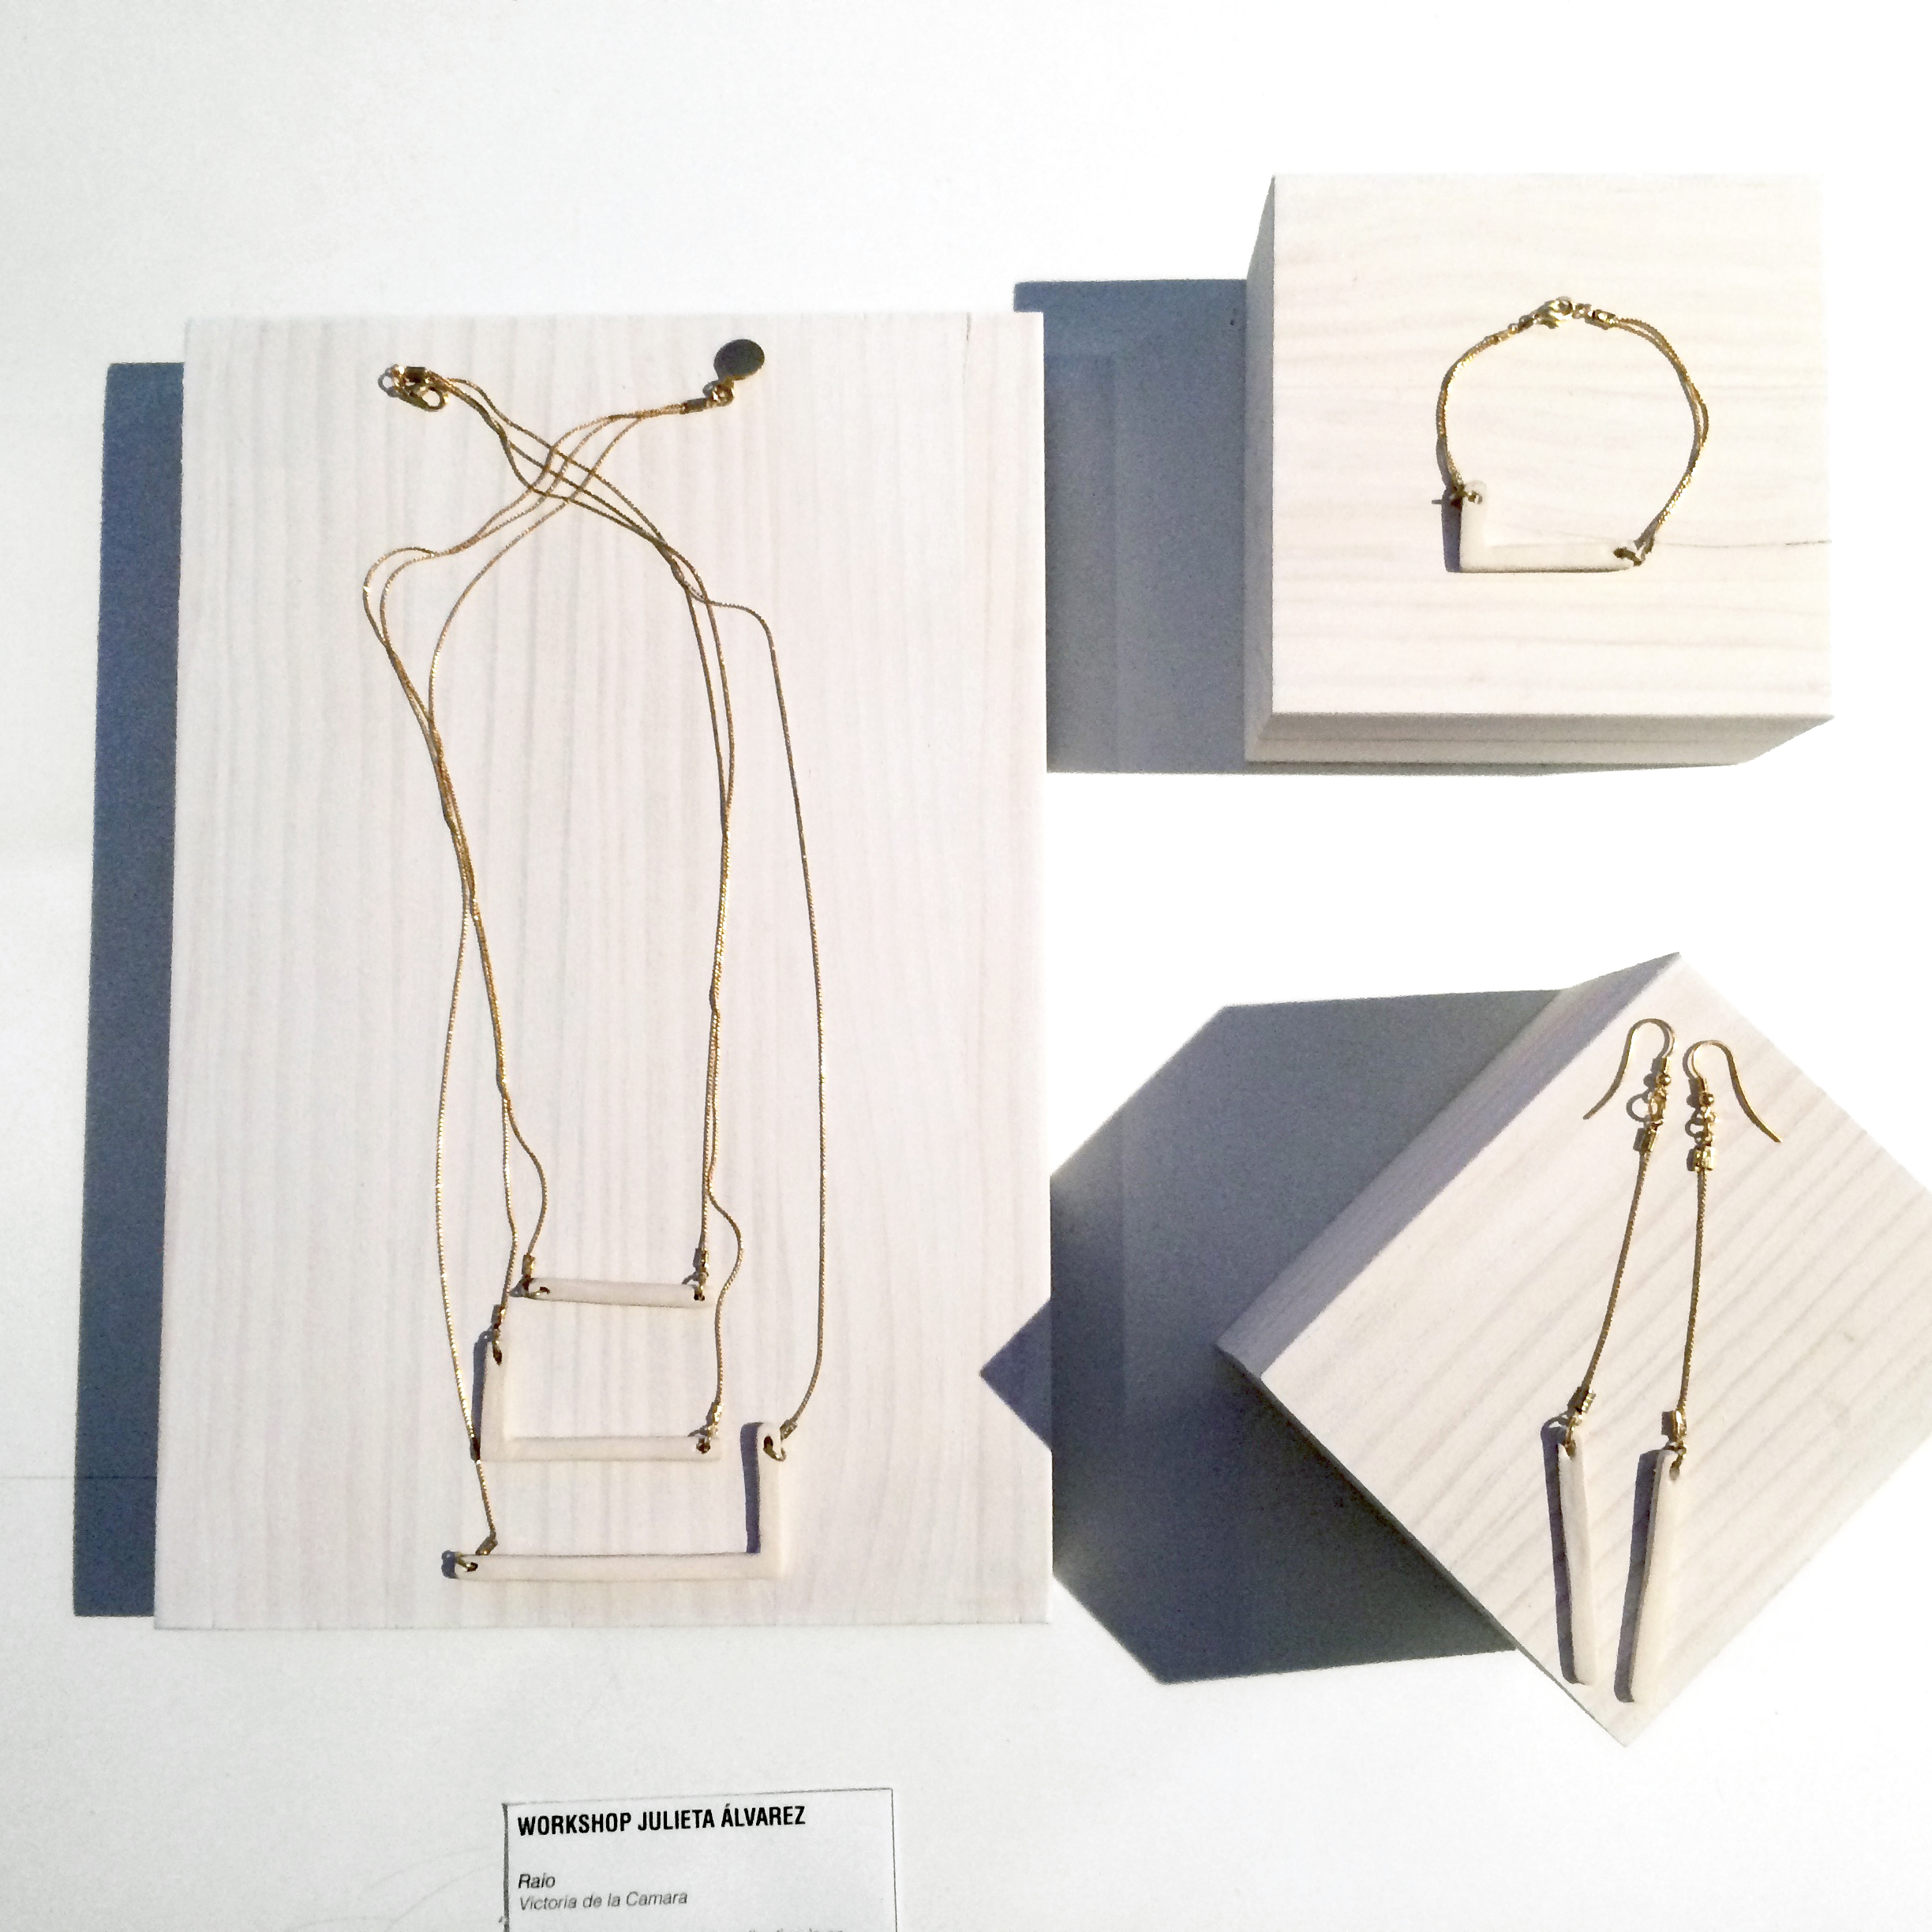 Raio Jewelry Collection     Product Design.   Working with ceramic structures, the Raio Collection is about the contrast of hard straight angles with delicate porcelain.